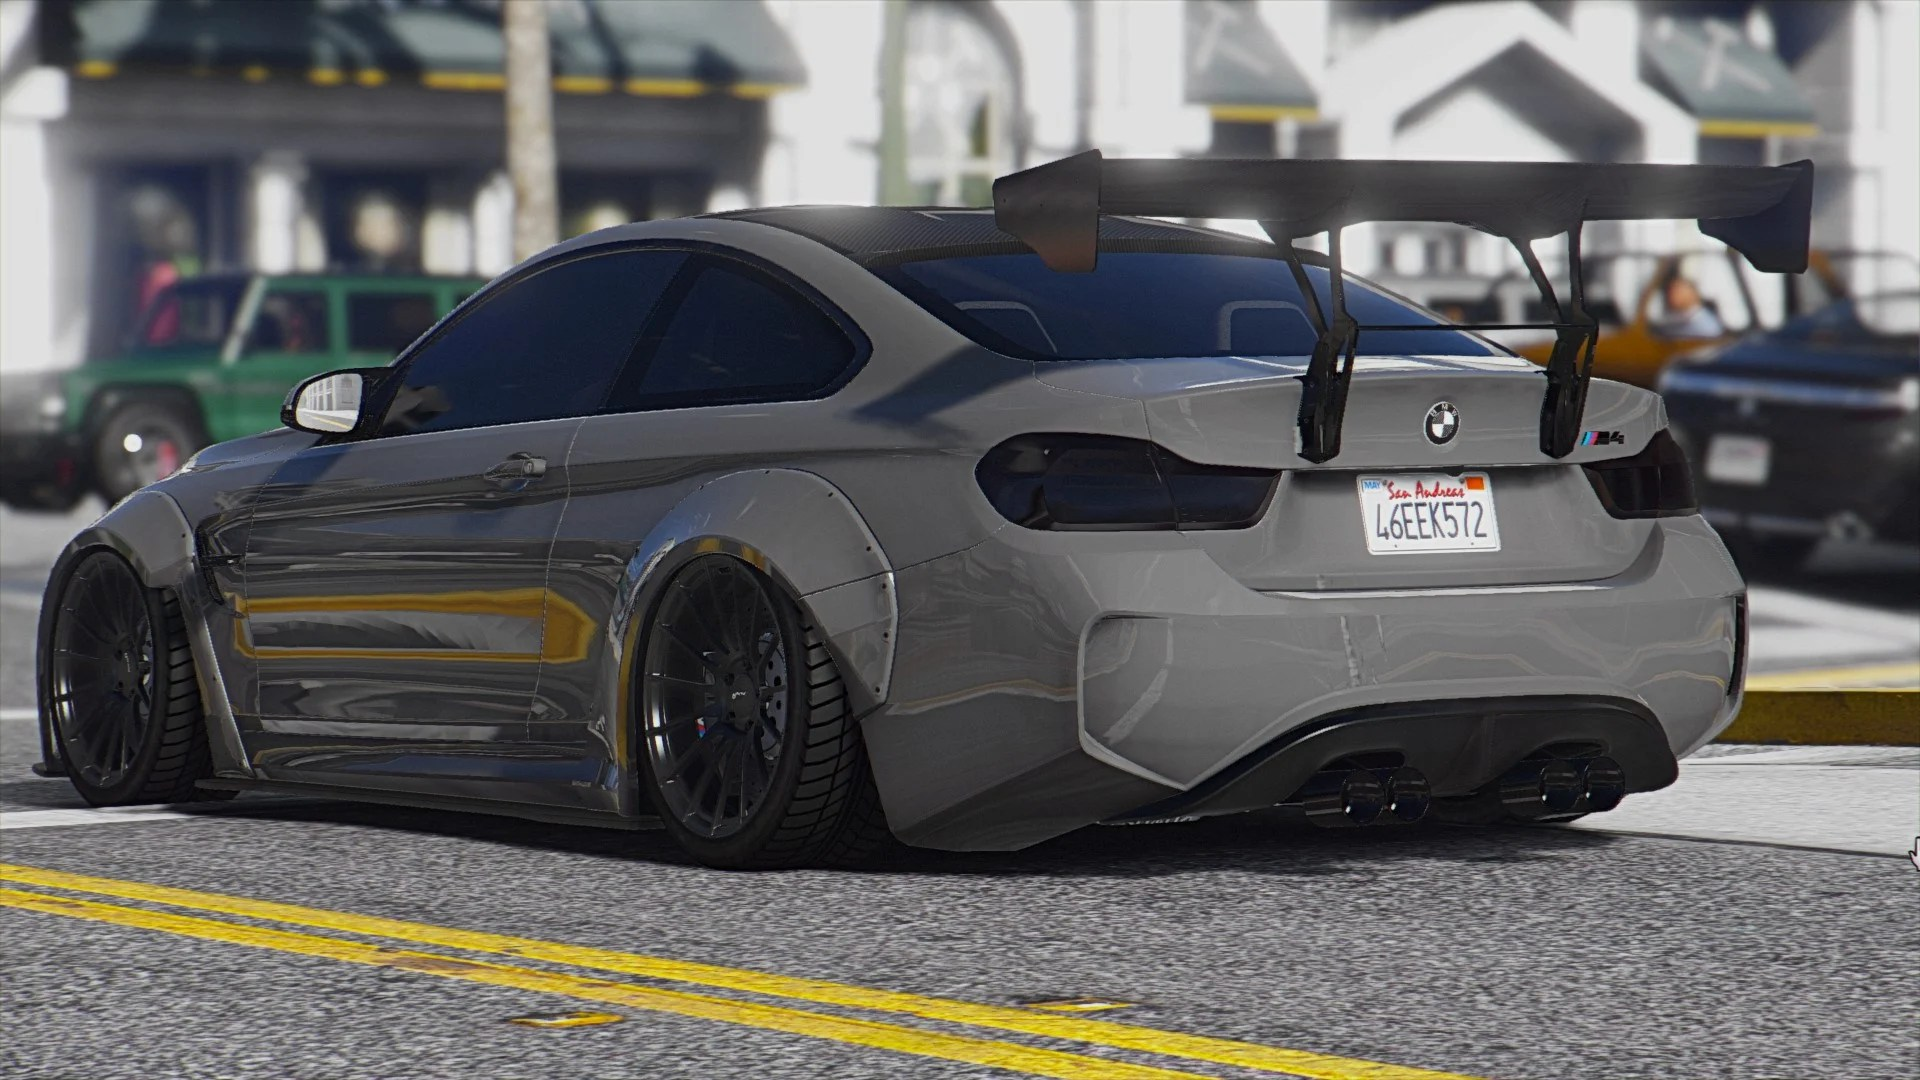 Gta Car Wallpaper 2015 Bmw F82 M4 Add On Tuning Bodykits Gta5 Mods Com